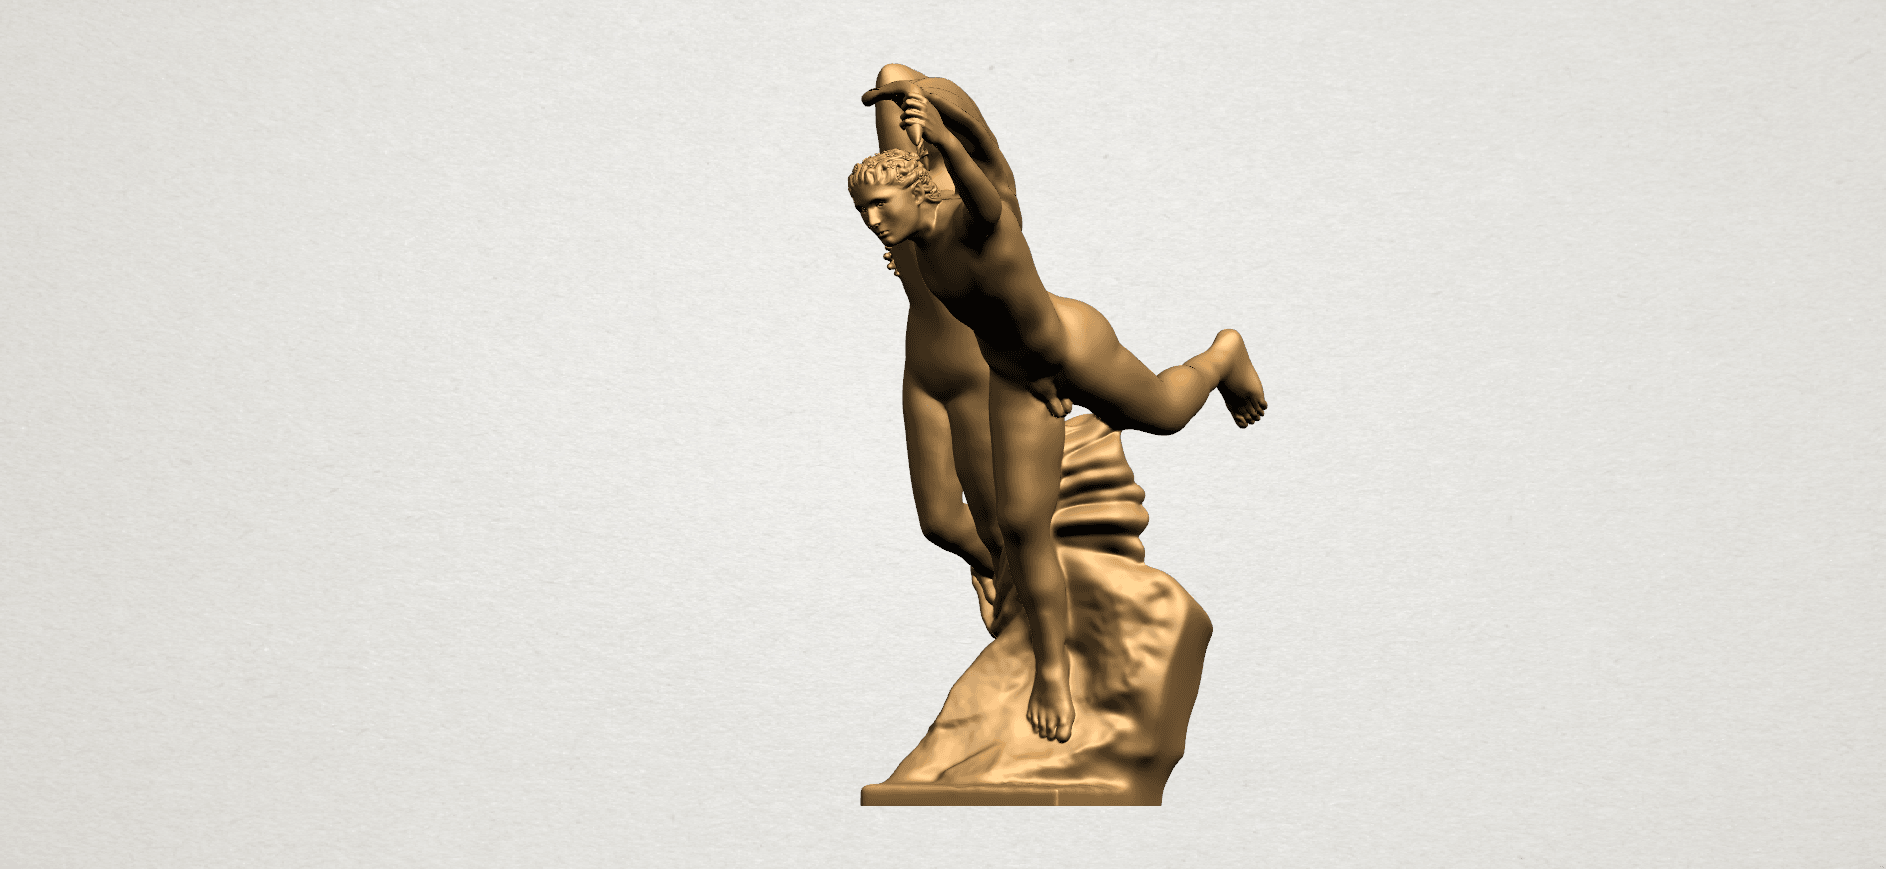 Cupid and Psyche - A12.png Download free STL file Cupid and Psyche • 3D printing template, GeorgesNikkei